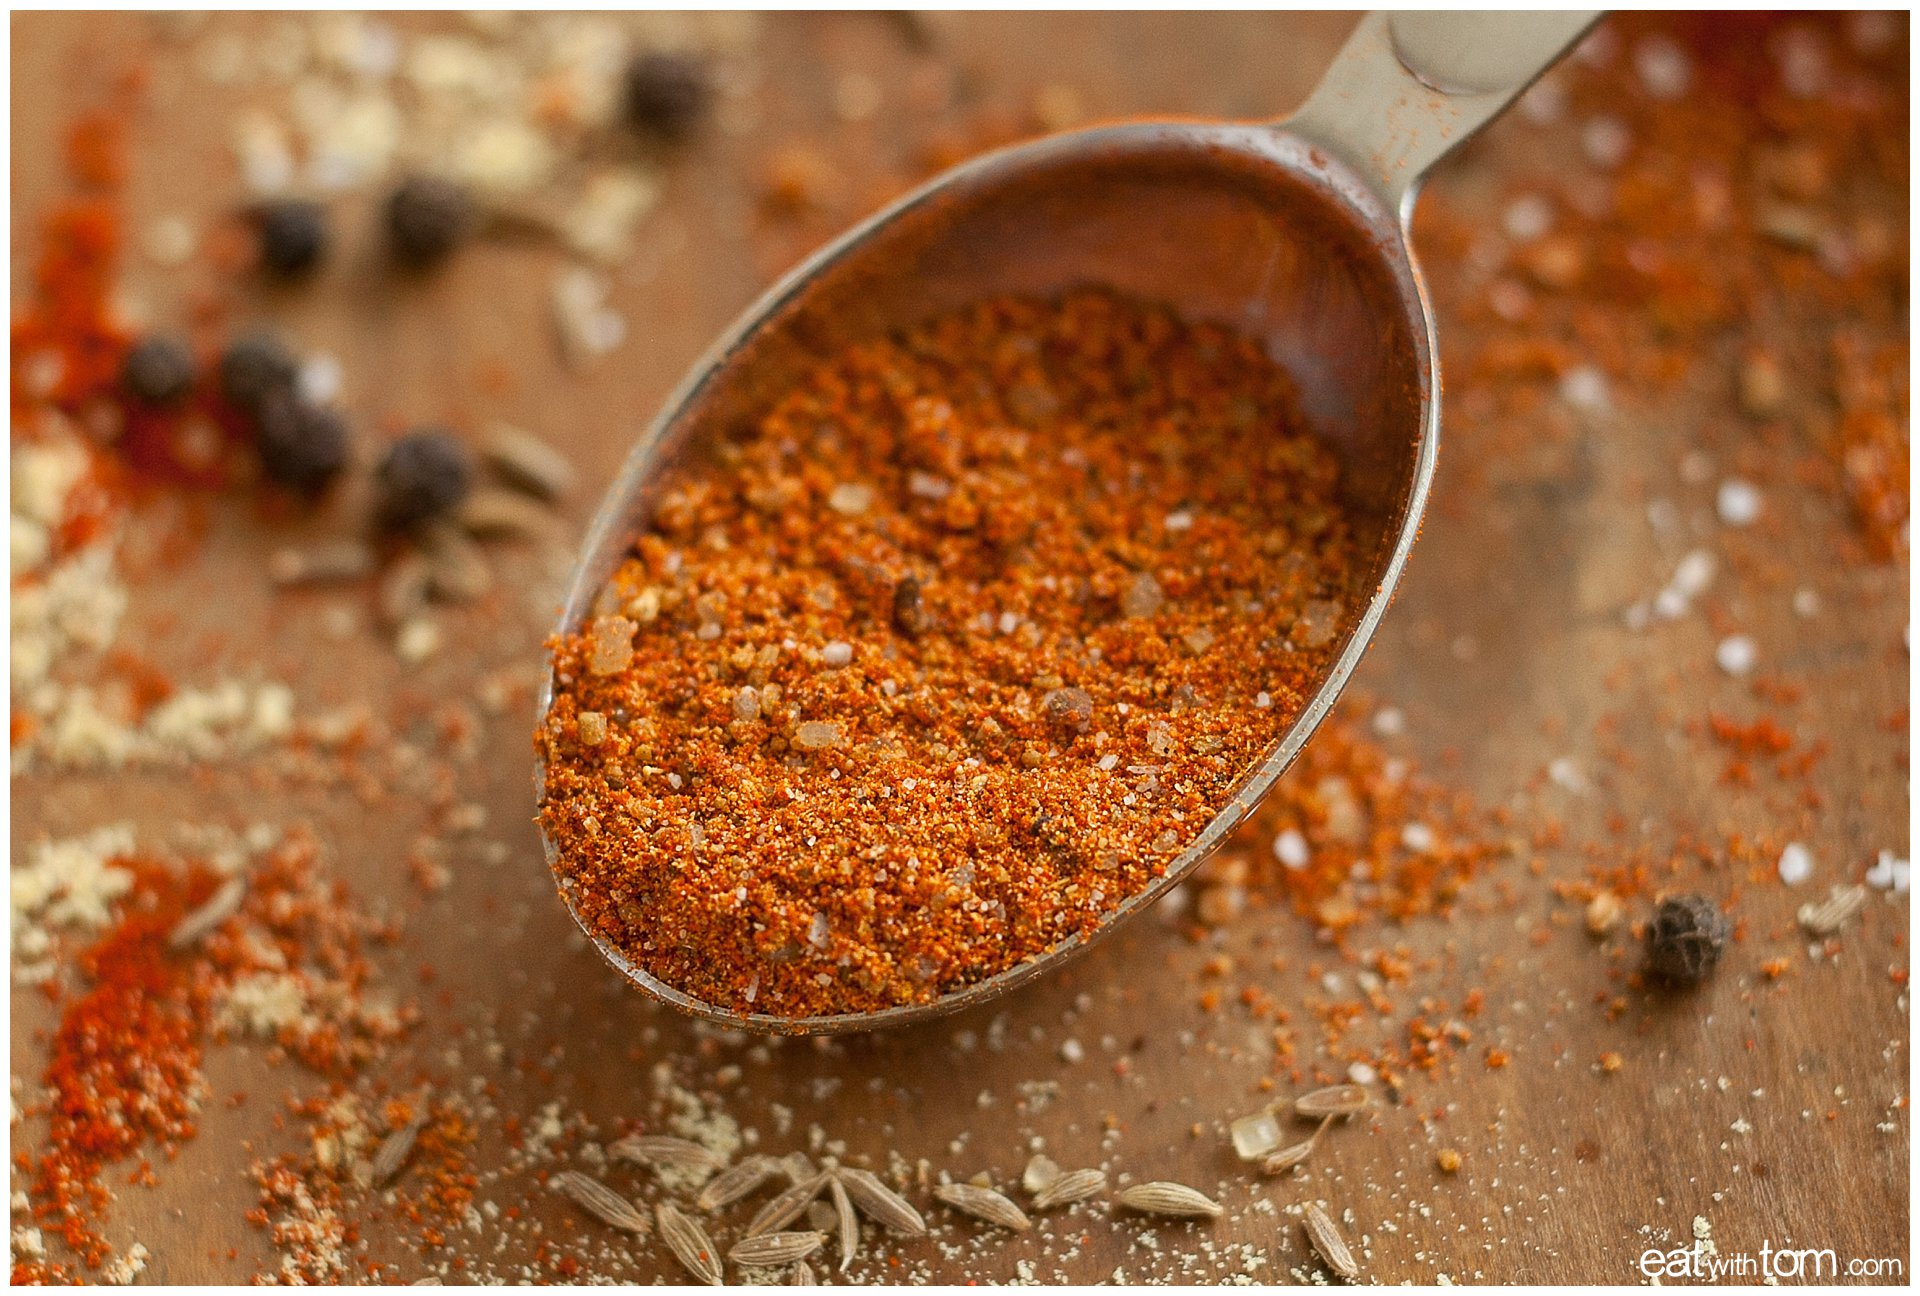 Chicken Hot Wing Dust Spice Blend Recipe Eat With Tom